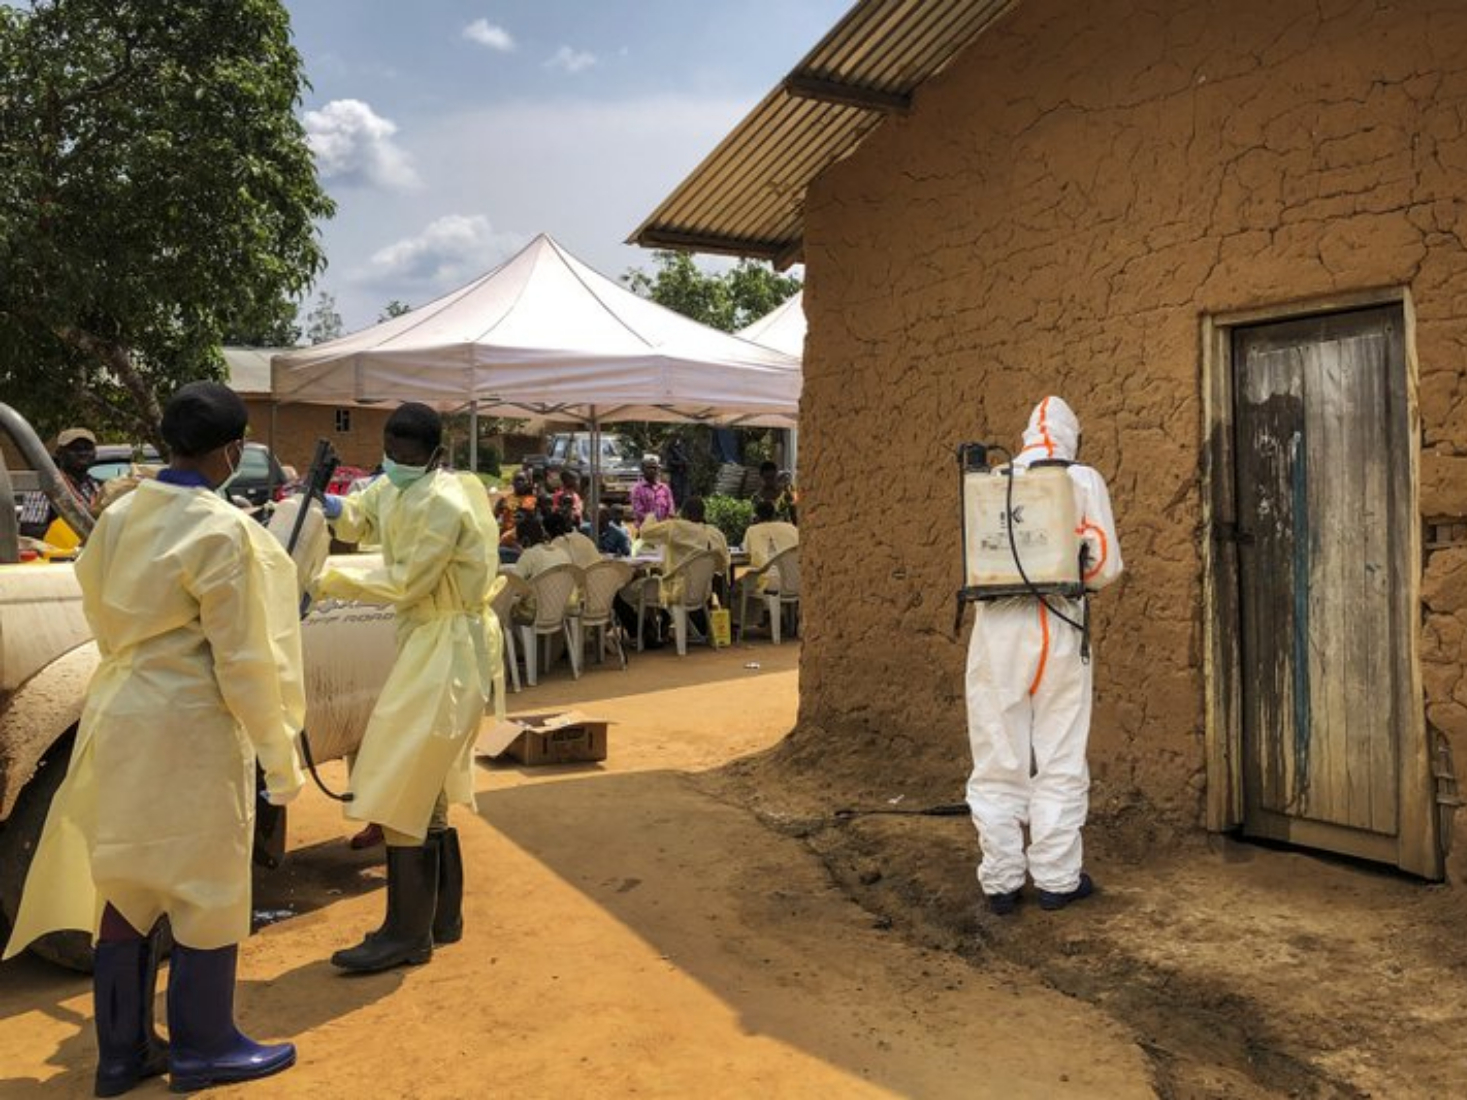 Ebola case confirmed in eastern DR Congo city of Goma: official